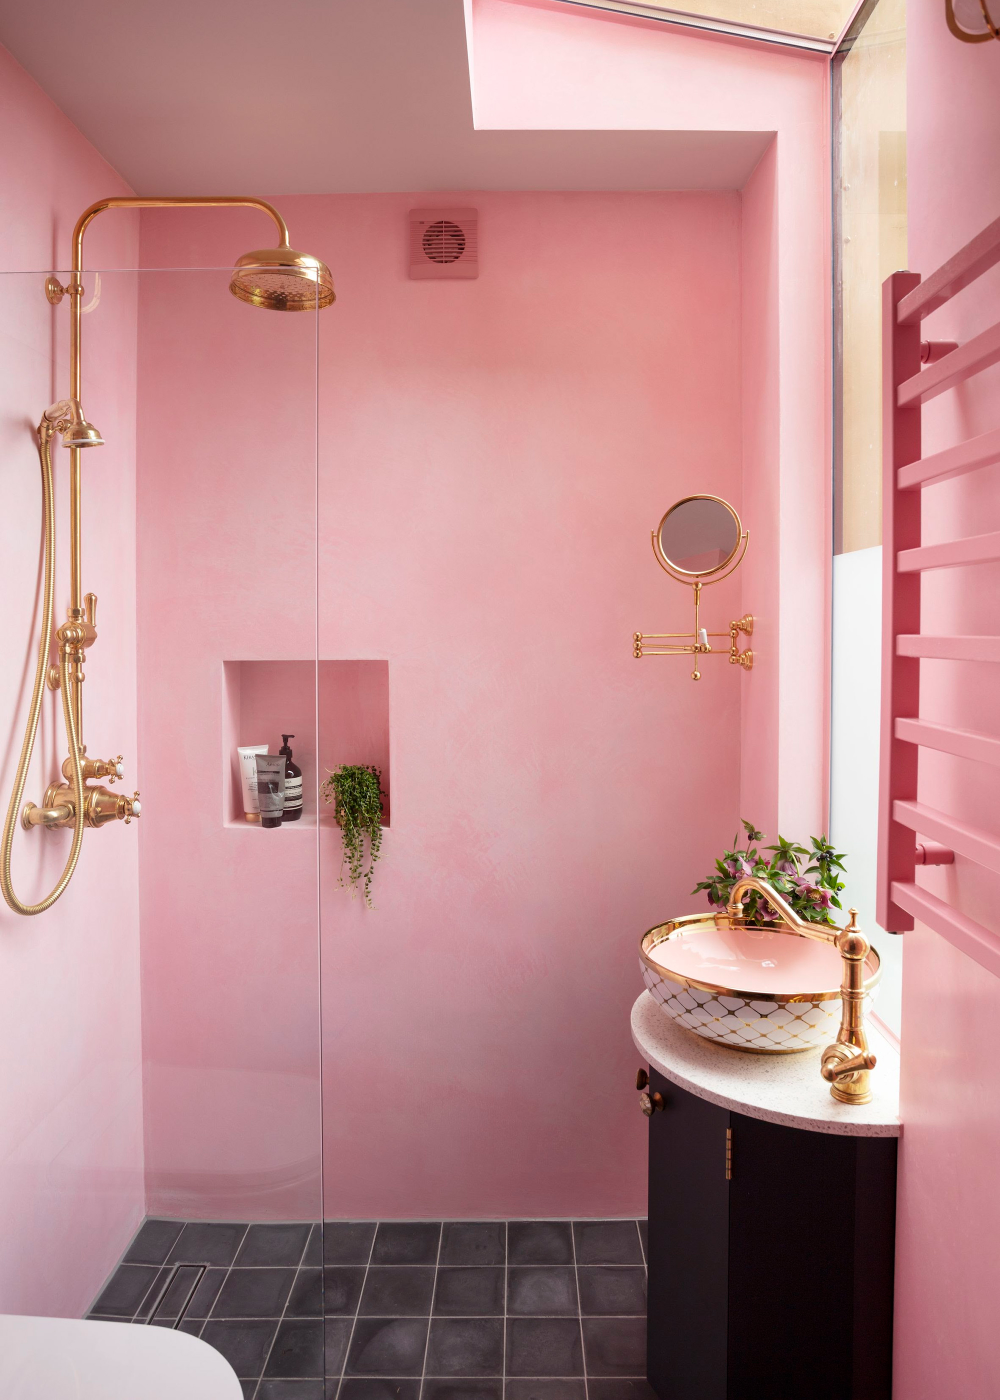 50 Ideas For Small Bathrooms Small Bathroom Design Solutions Homes Gardens In 2021 Pink House Interior Beautiful Bathrooms Pink Bathroom